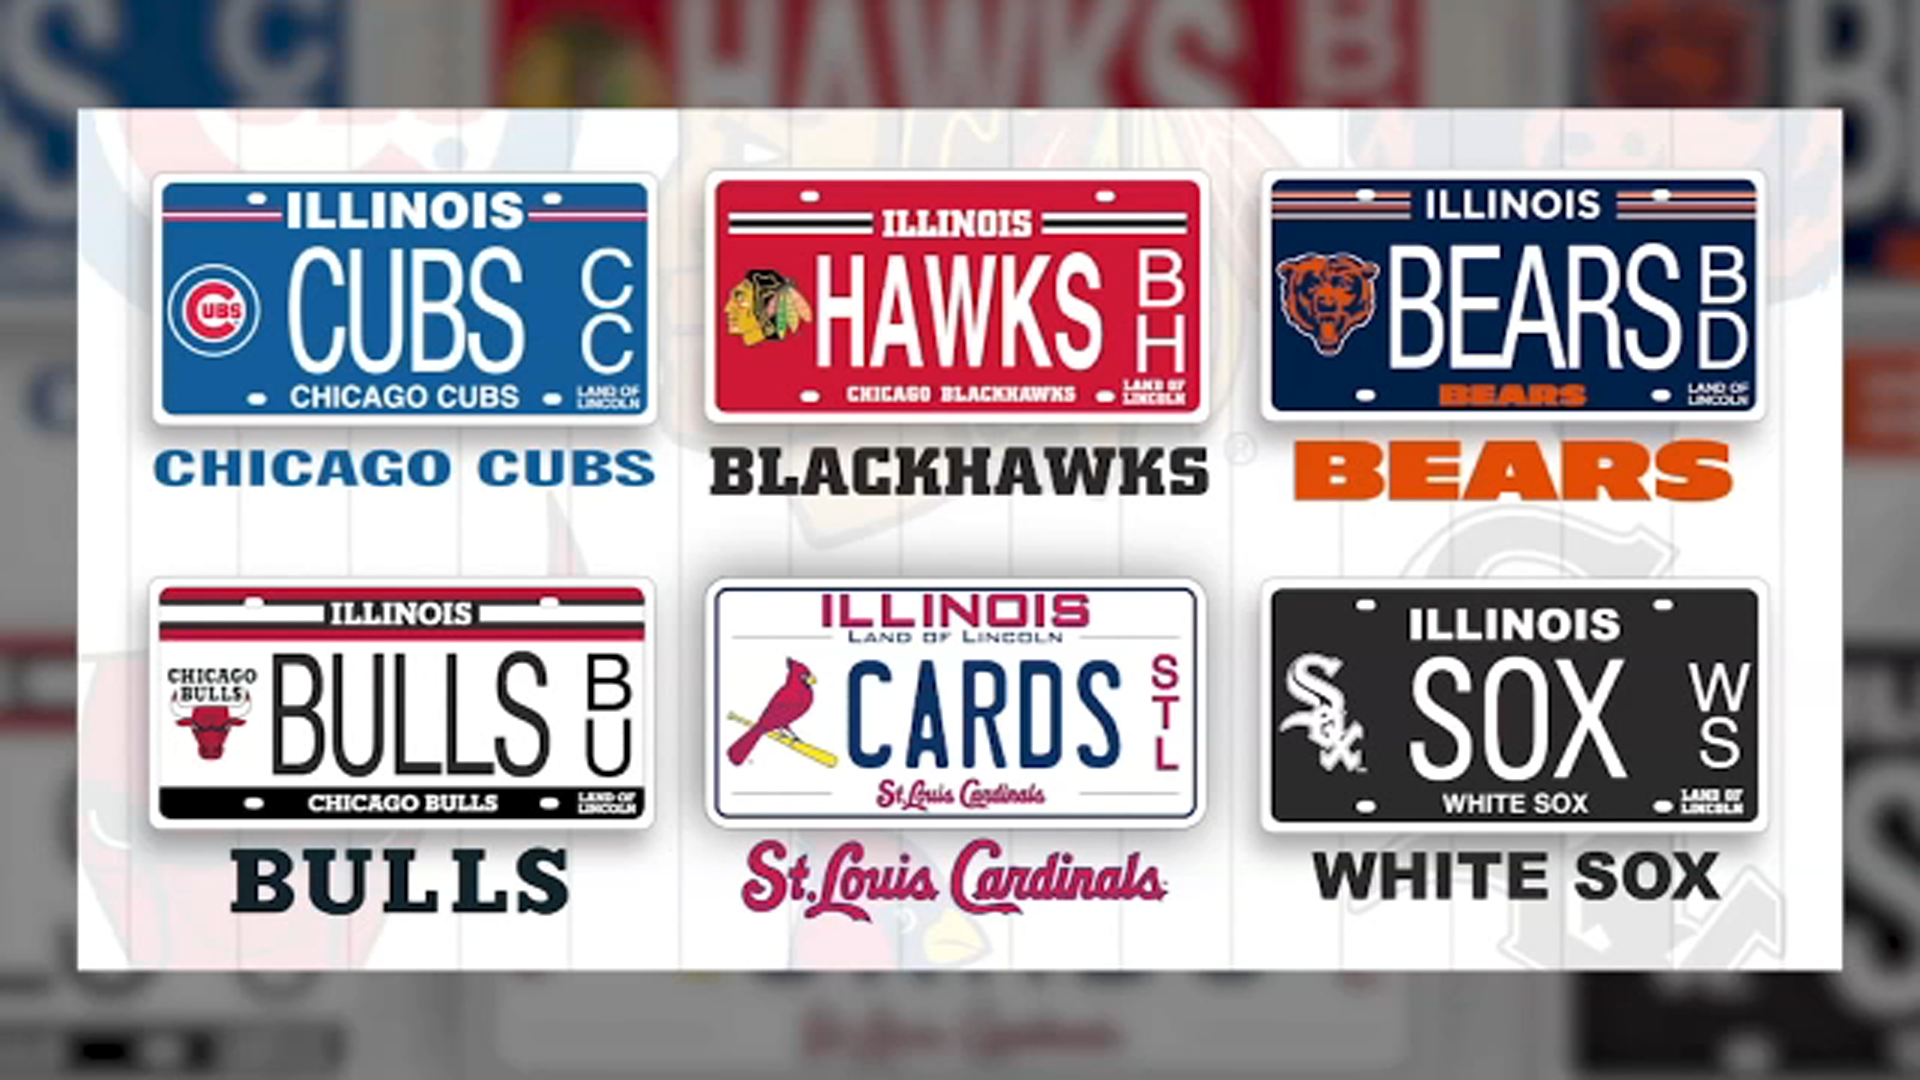 Illinois public school get $13M from professional sports team specialty license plates, Secretary of State Jesse White says